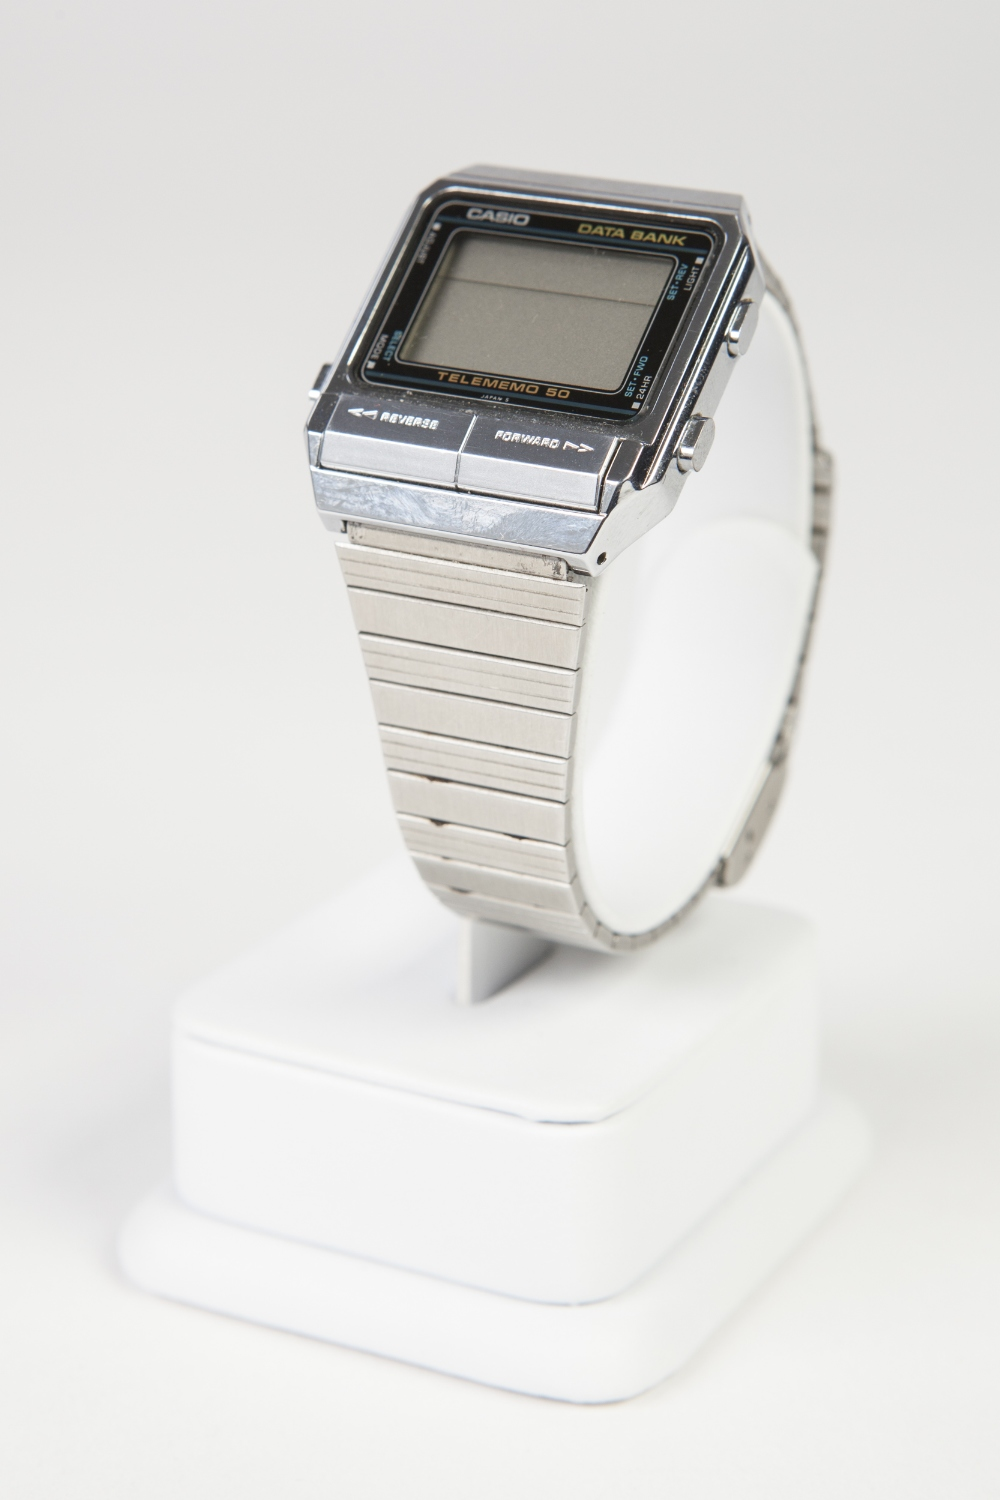 Lot 22 - GENT'S CASIO DATA BANK TELEMEMO 50 CHRONOGRAPH DIGITAL WRIST WATCH reference DB - 500, with quartz